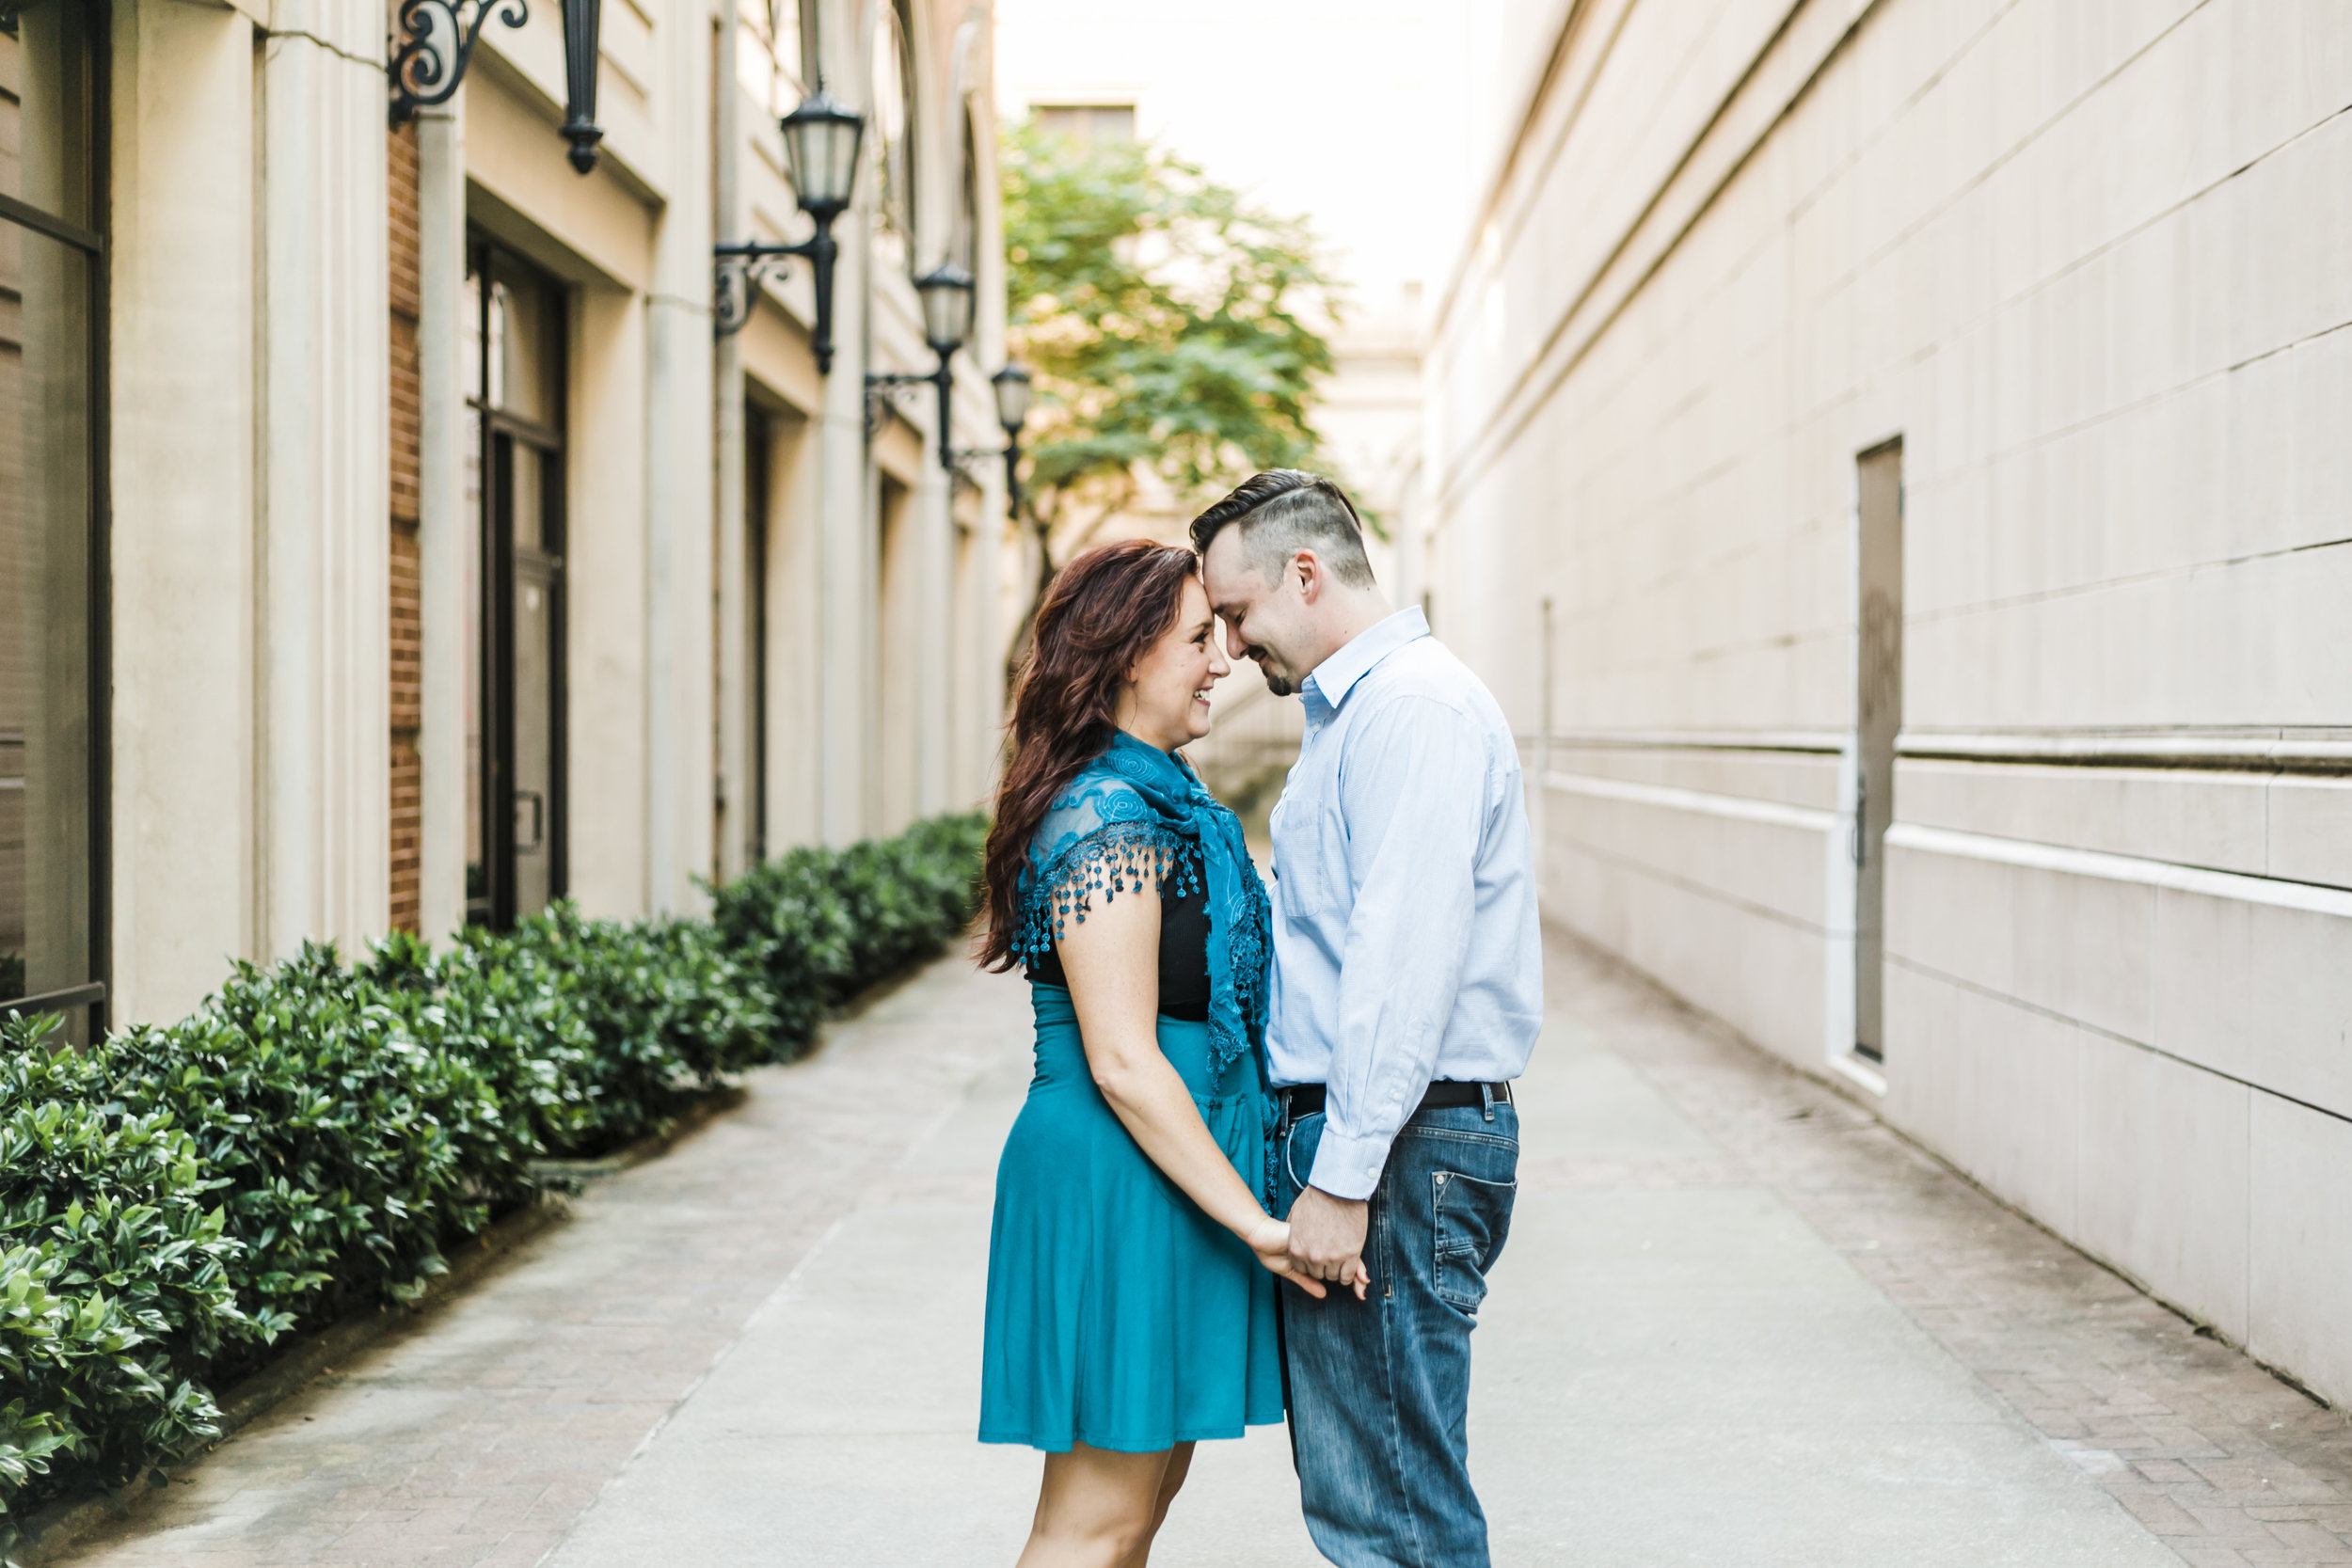 knoxville engagement and wedding photographer downtown knoxville winx photo